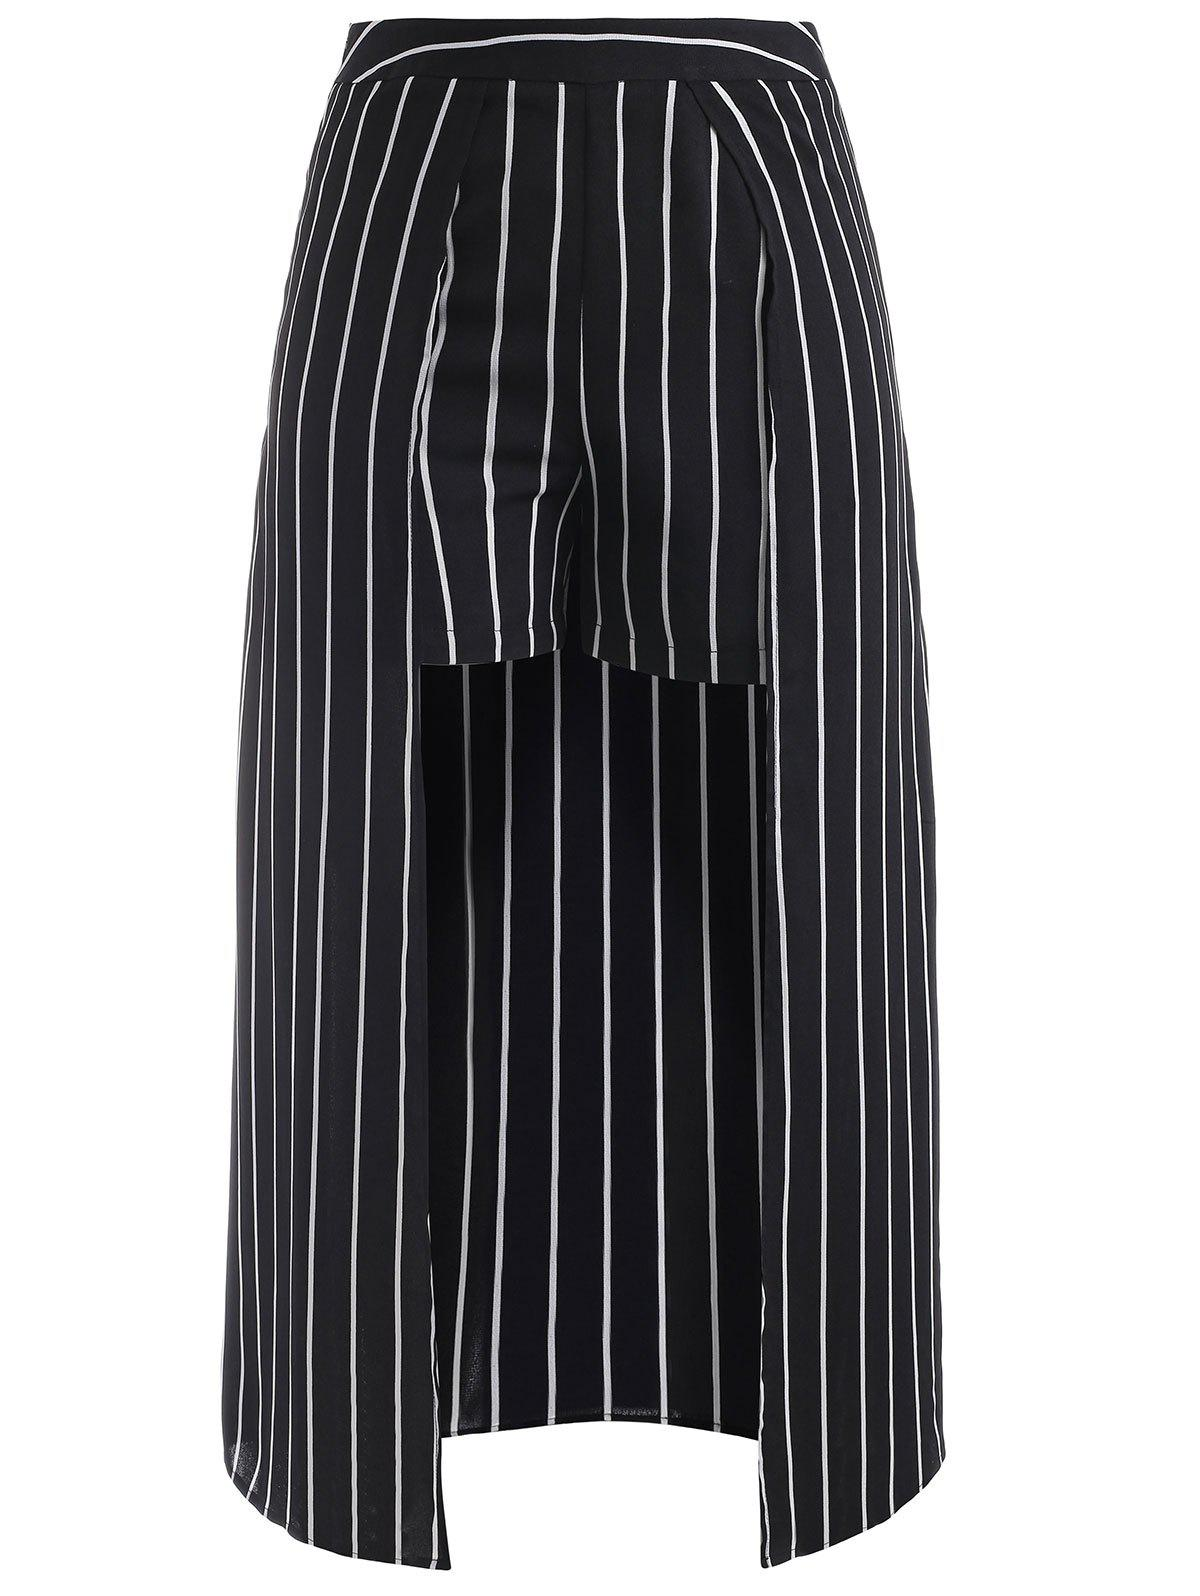 Sale Striped Shorts with Maxi Skirt Overlay